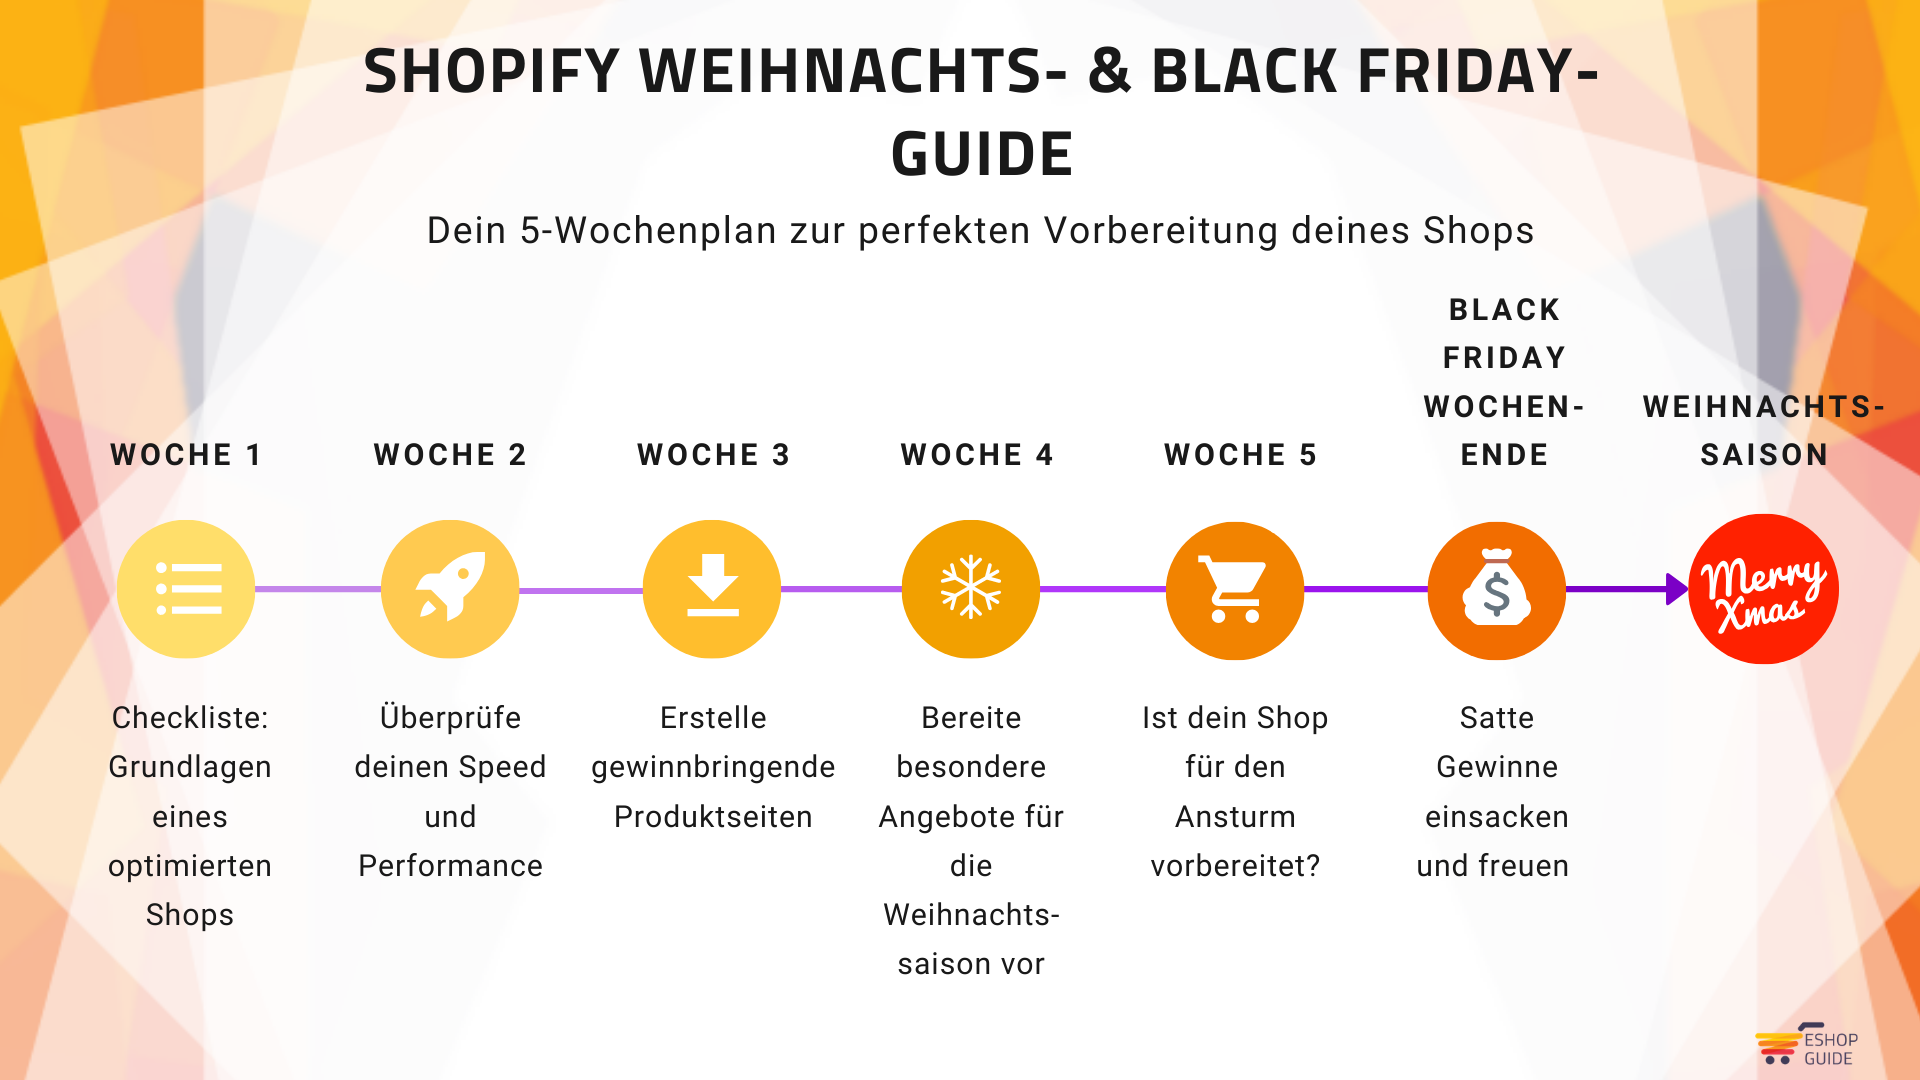 Weihnachts- & Black Friday-Guide Timeline